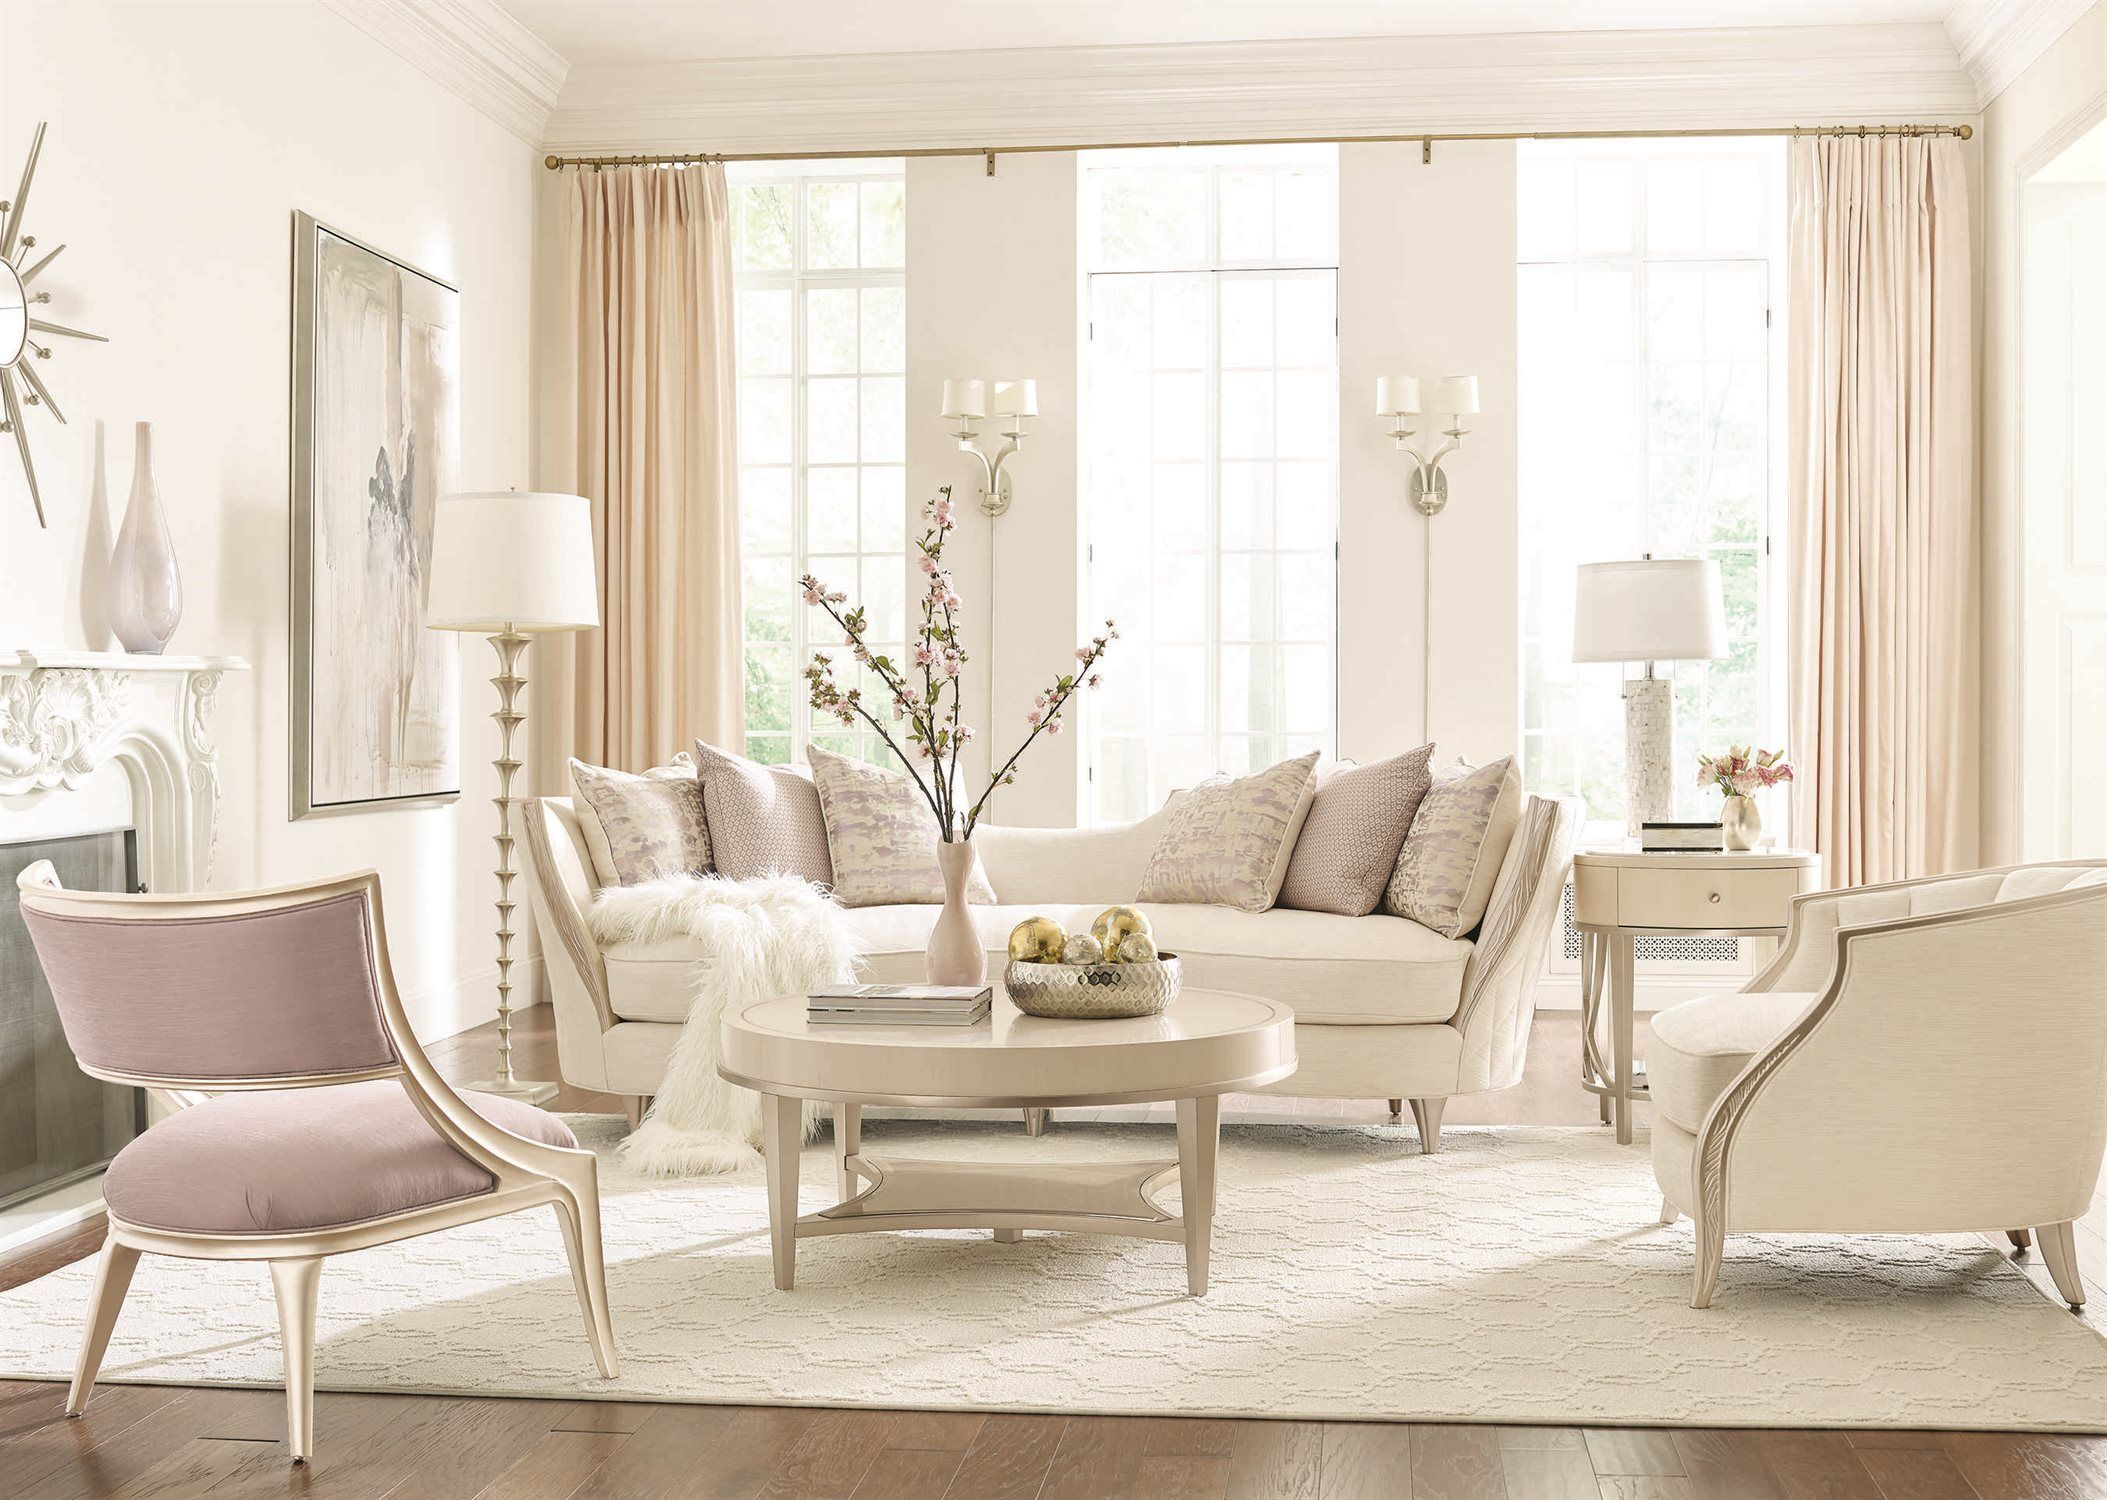 Pin On Bedroom House Plans Elegant Living Room Living Room Sets Elegant Living Room Decor Elegant living room chairs